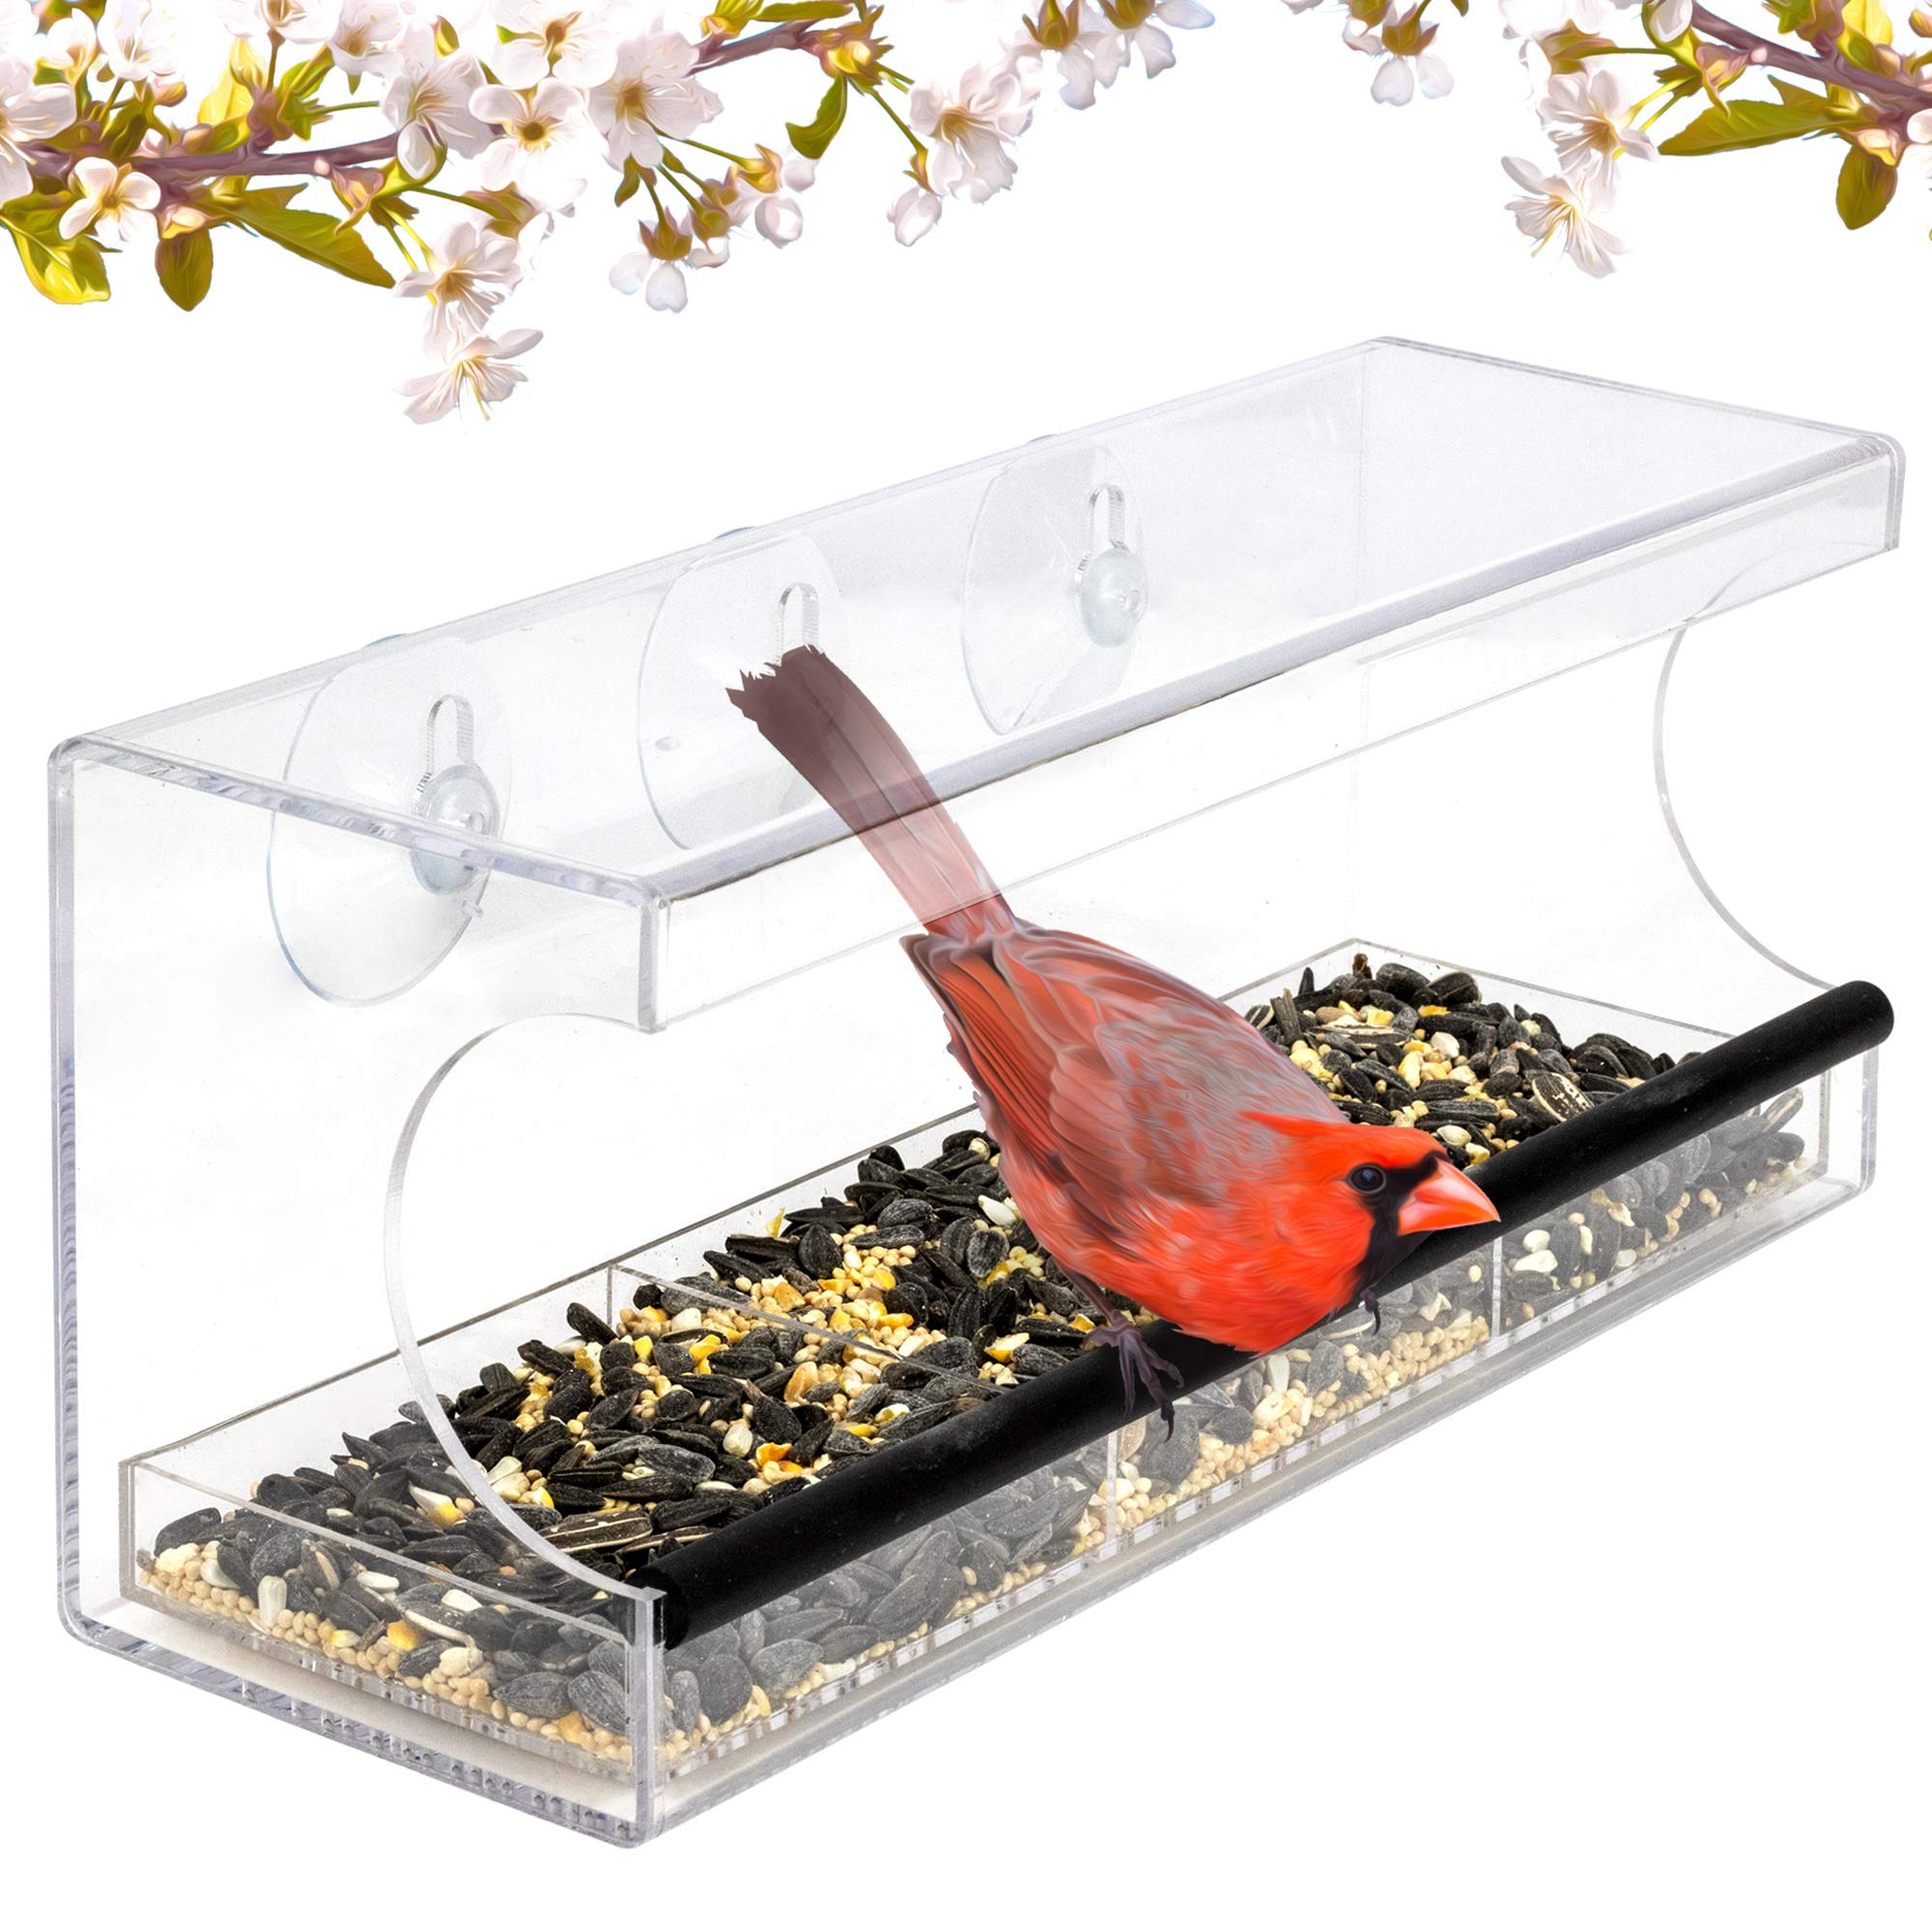 Jade Active Window Bird Feeder with Strong Suction Cups - Easy Outside Installation - Squirrel Proof Bird Feeder fits Kitchen and Living Room Window Flawlessly